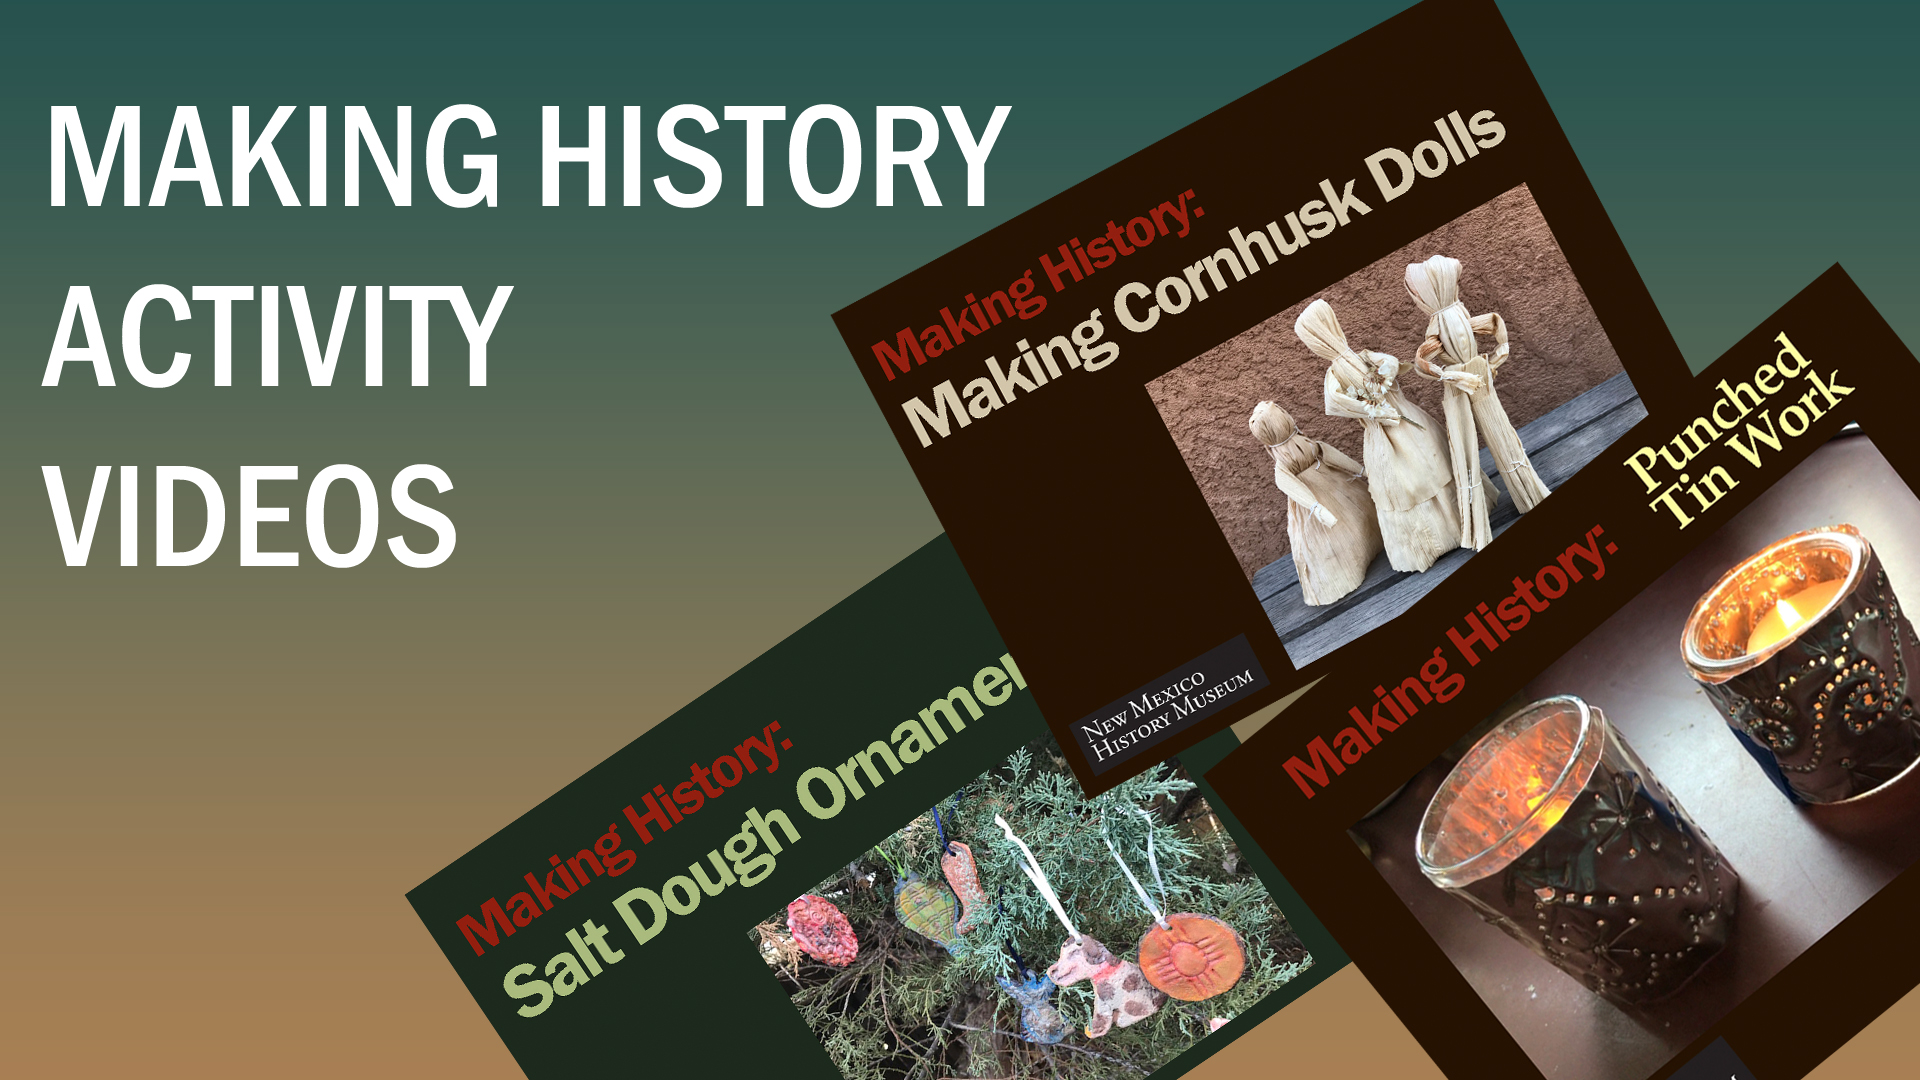 Activity Videos | Making History